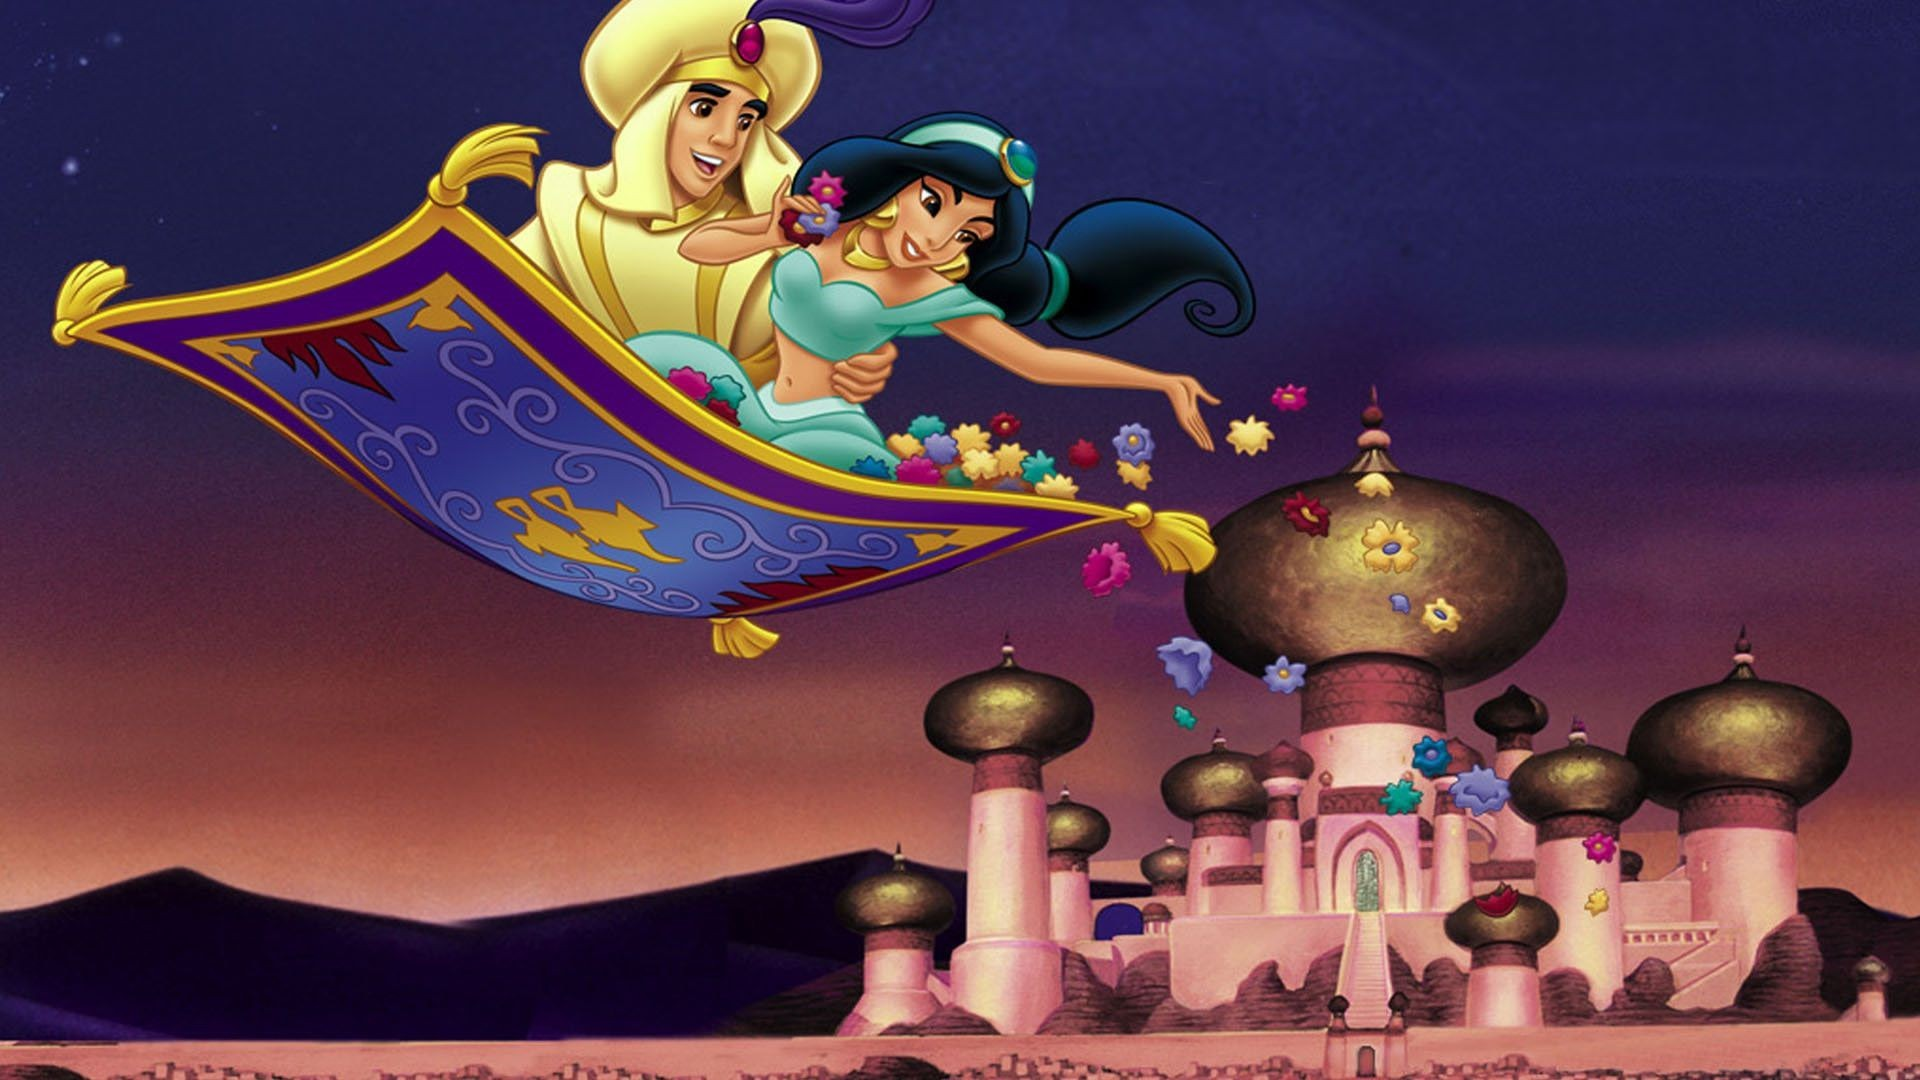 Aladdin HD Wallpapers for desktop download for Aladdin Castle Wallpaper  28cpg